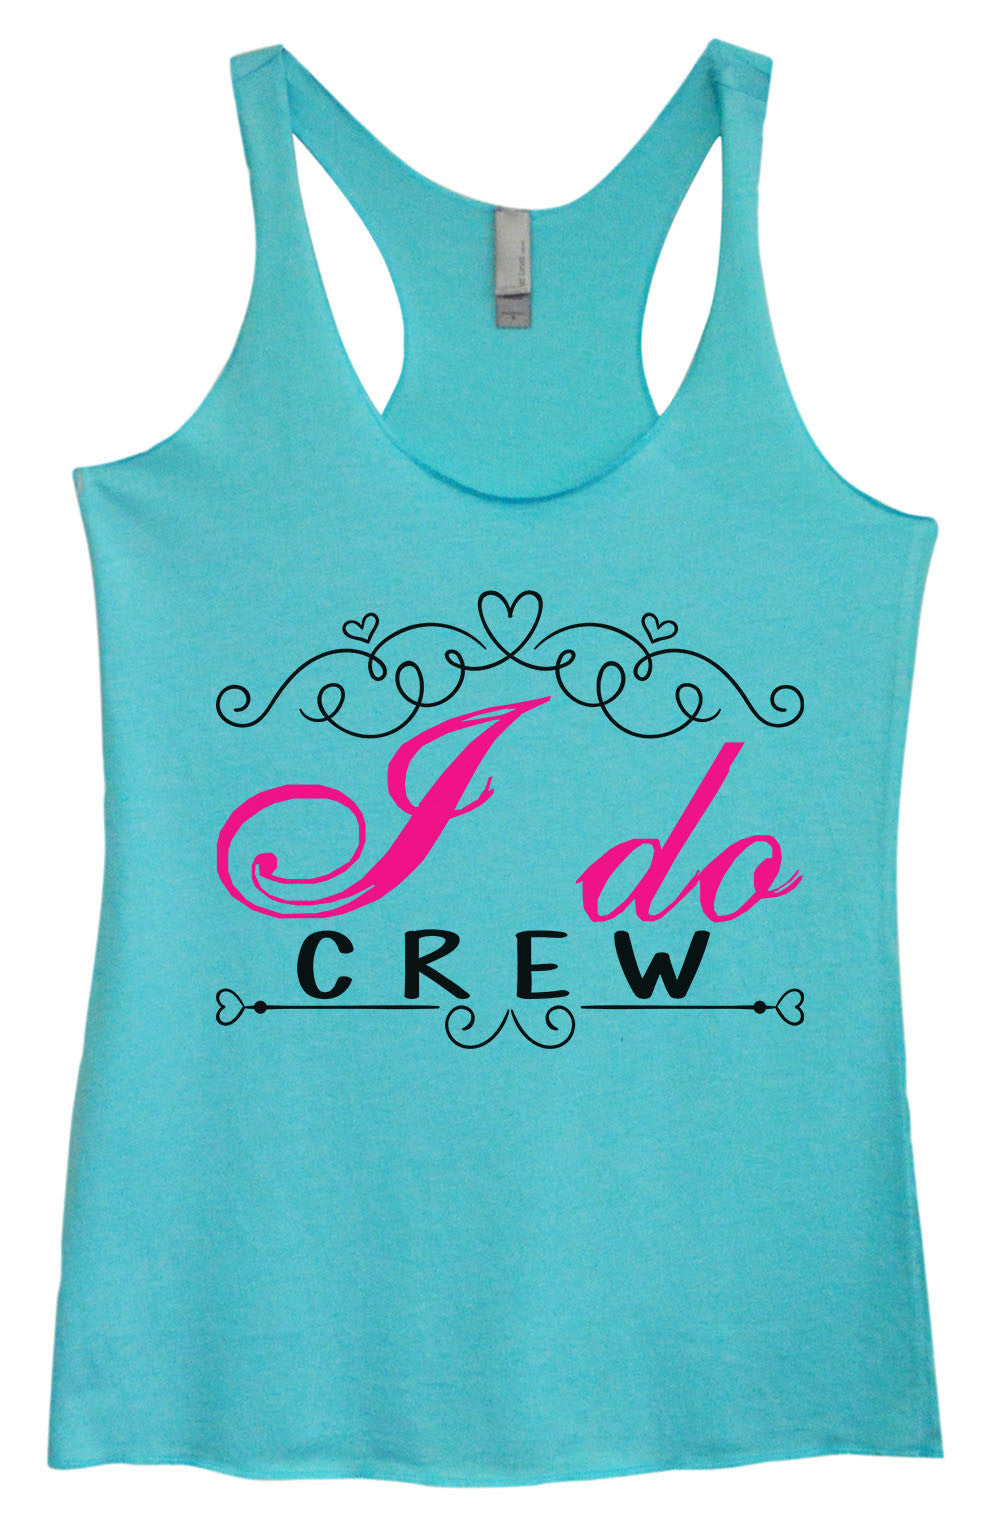 Womens Fashion Triblend Tank Top - I Do Crew - Tri-1374 - Funny Shirts Tank Tops Burnouts and Triblends  - 3